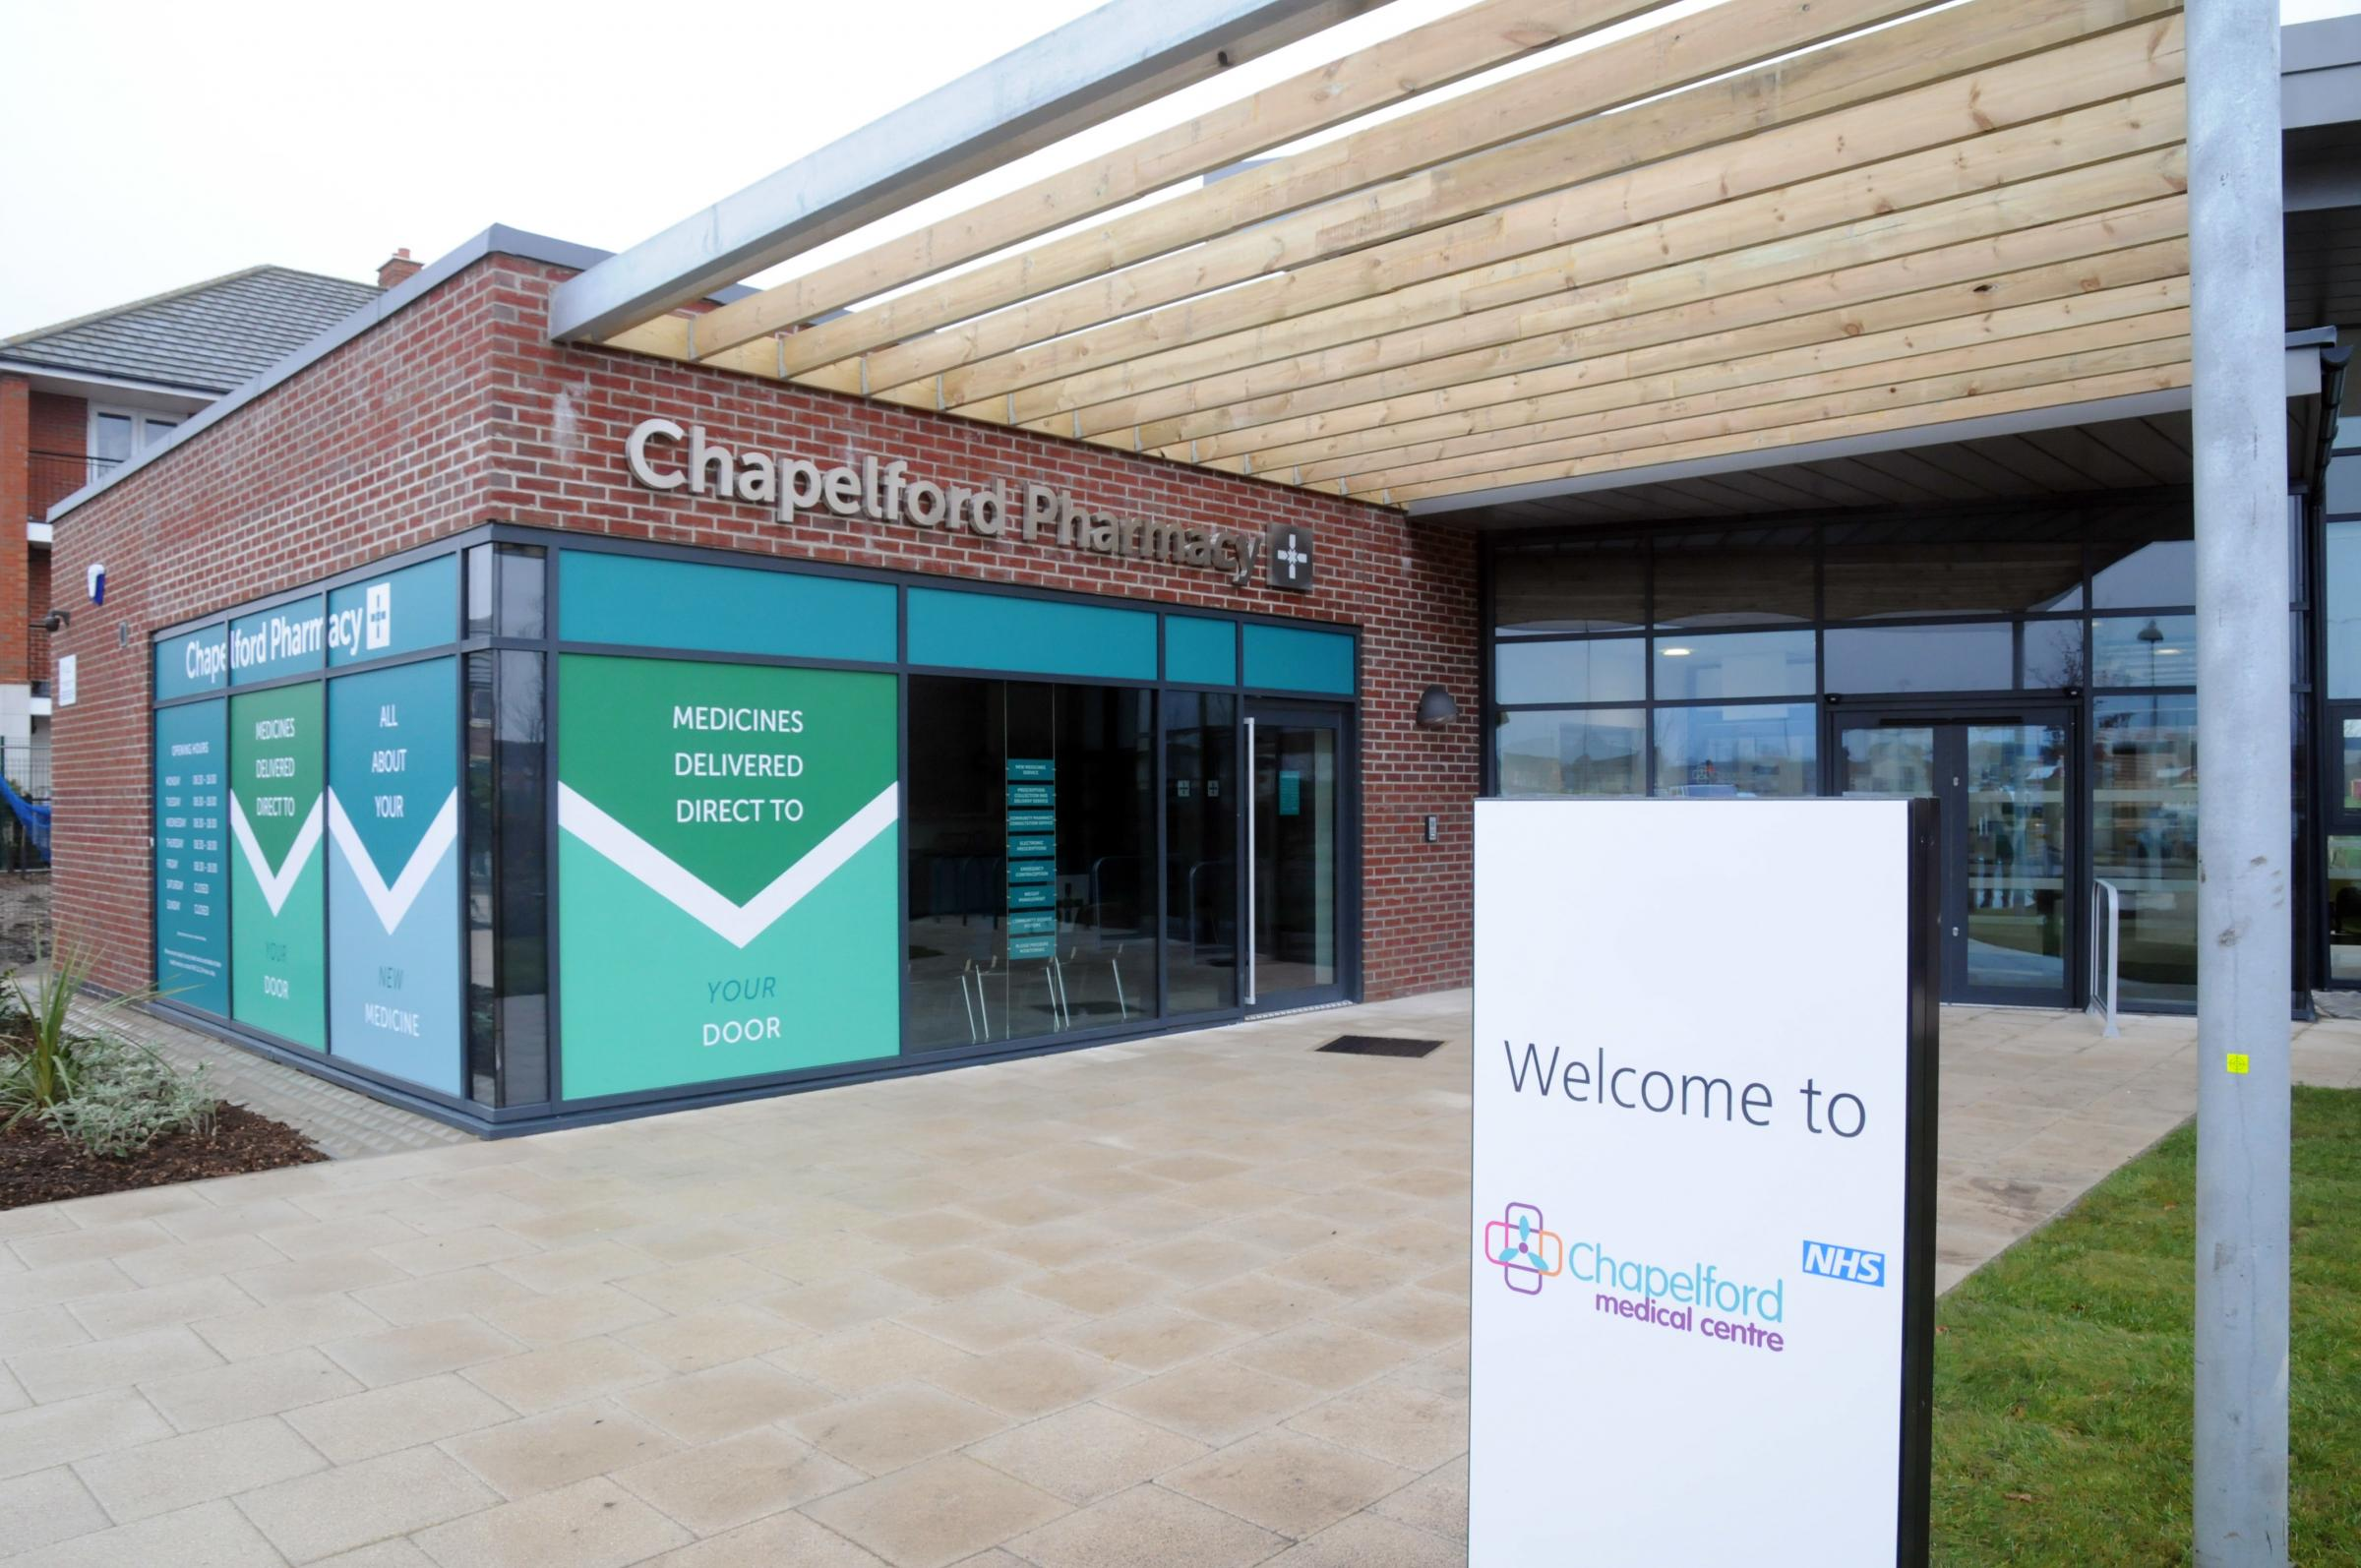 FIRST LOOK: Chapelford Medical Centre opens its doors to patients next week